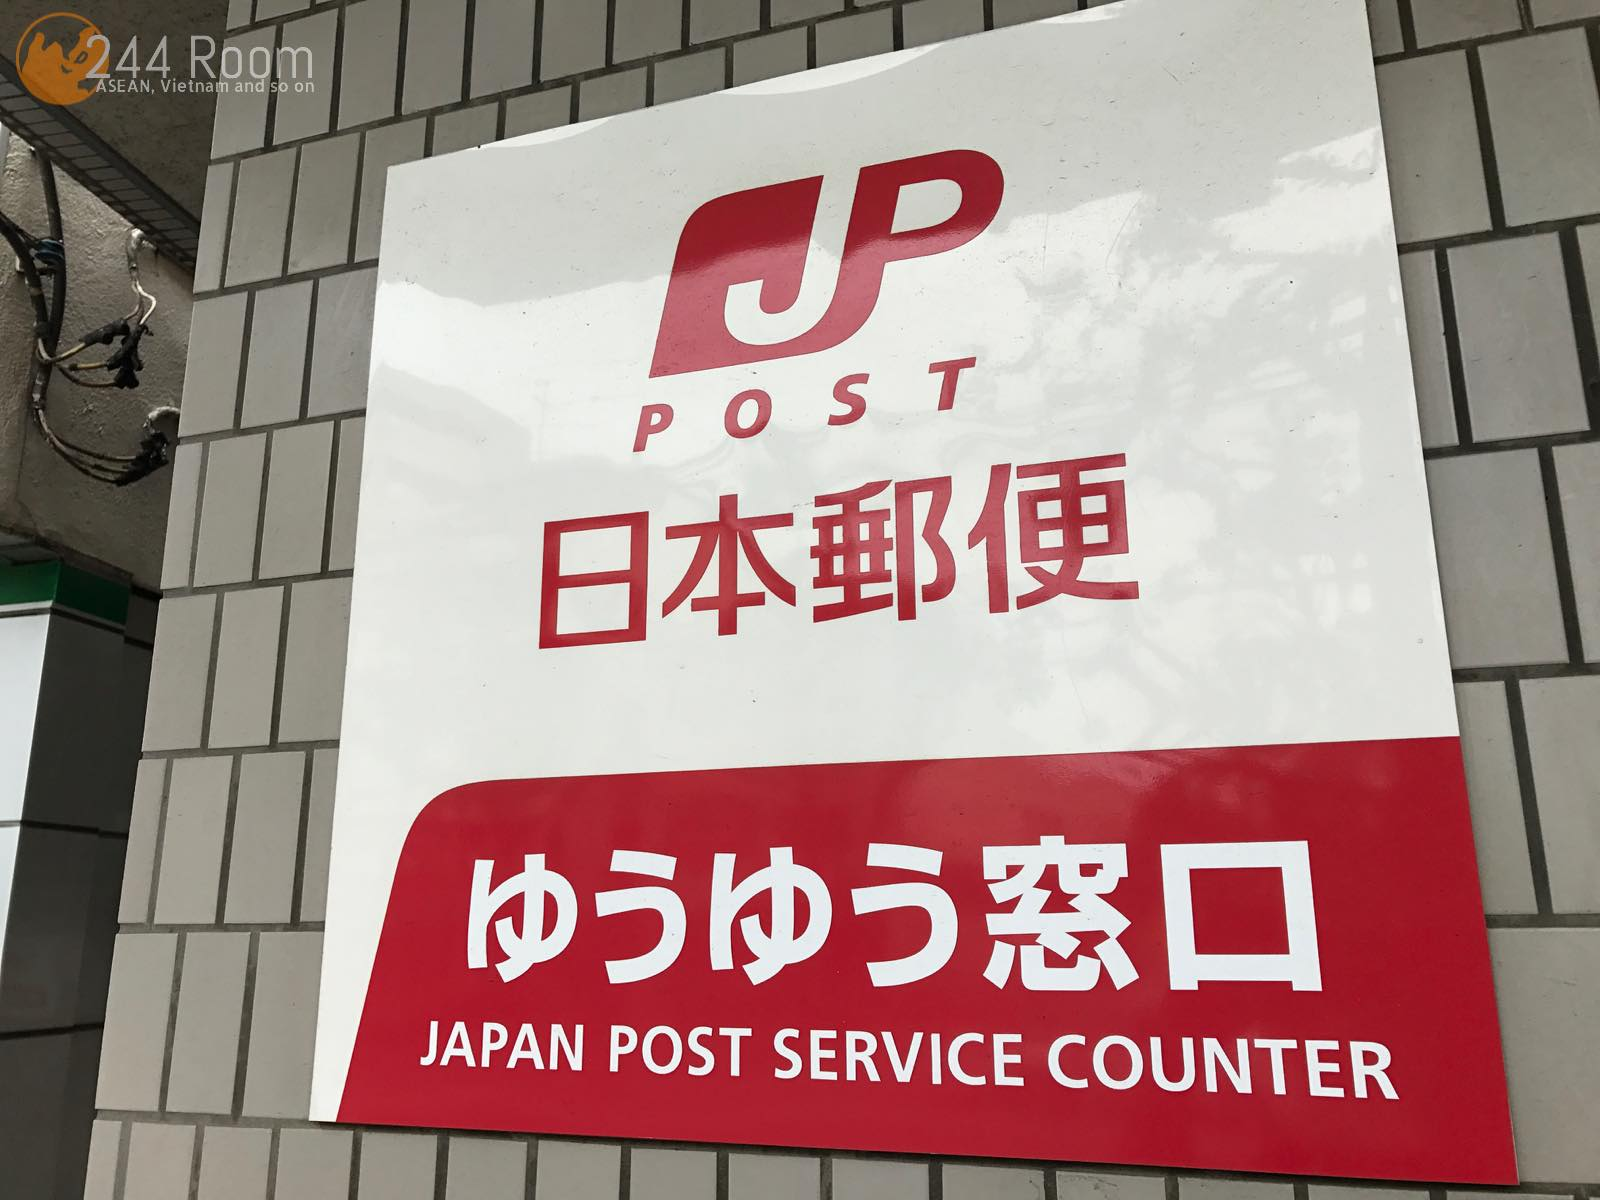 ゆうゆう窓口 JP Post Service Counter